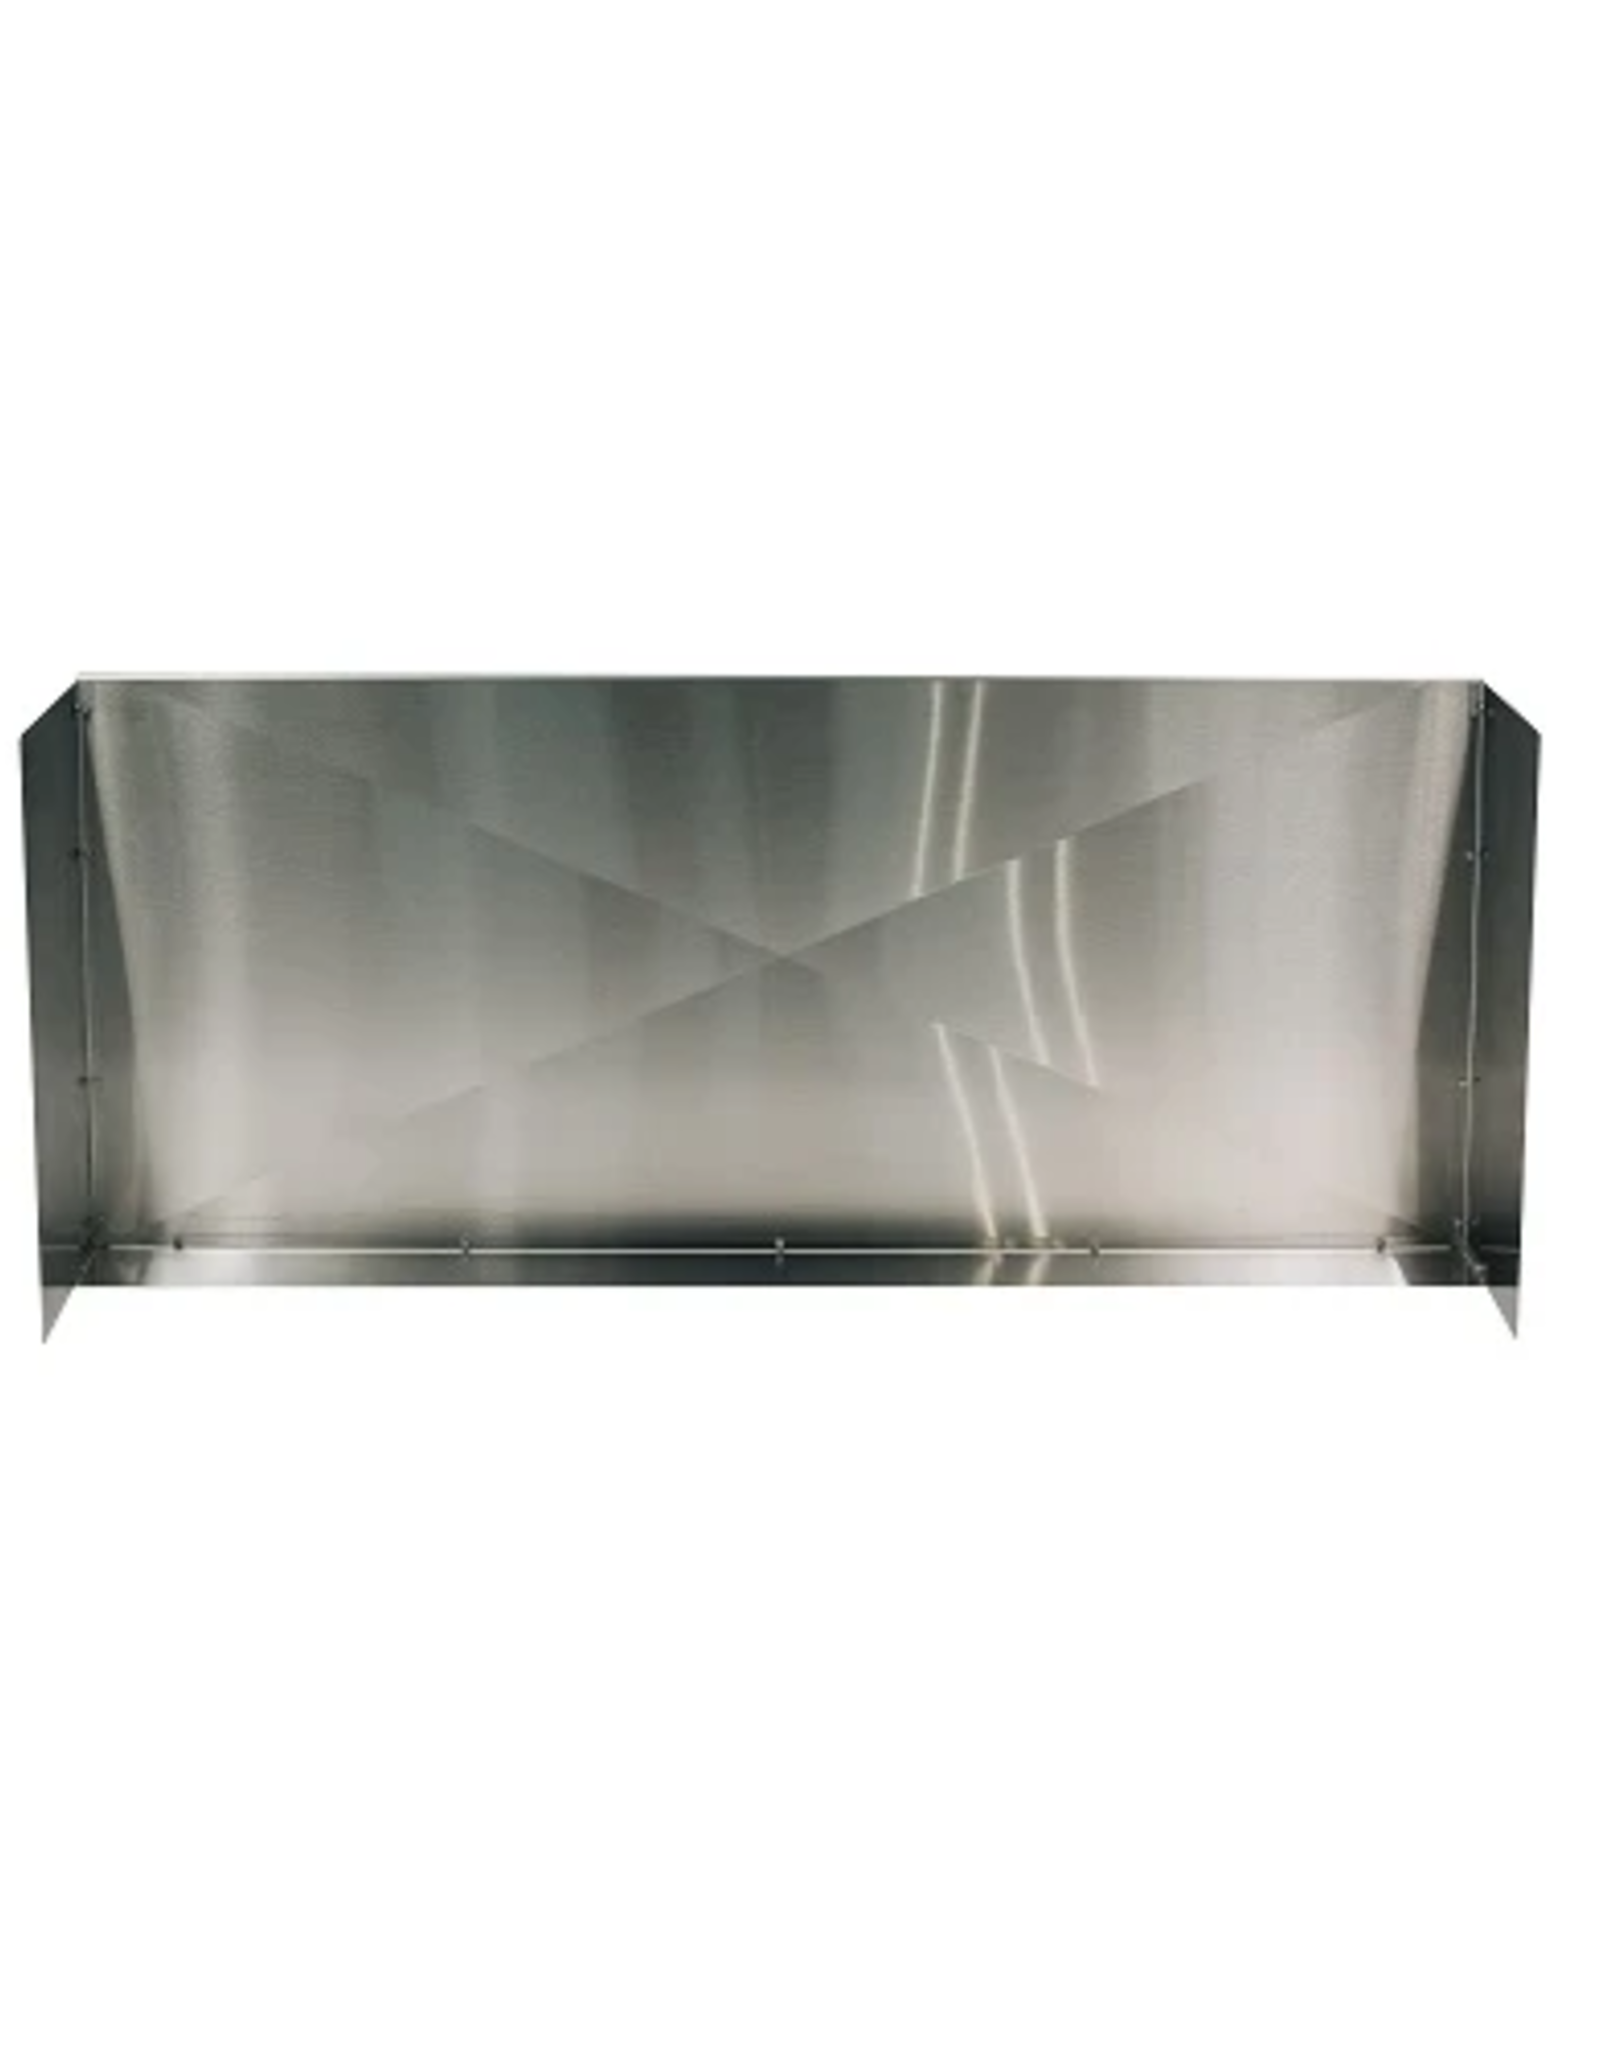 """Renaissance Cooking Systems Renaissance Cooking Systems 36"""" Wind Guard - RWGM"""